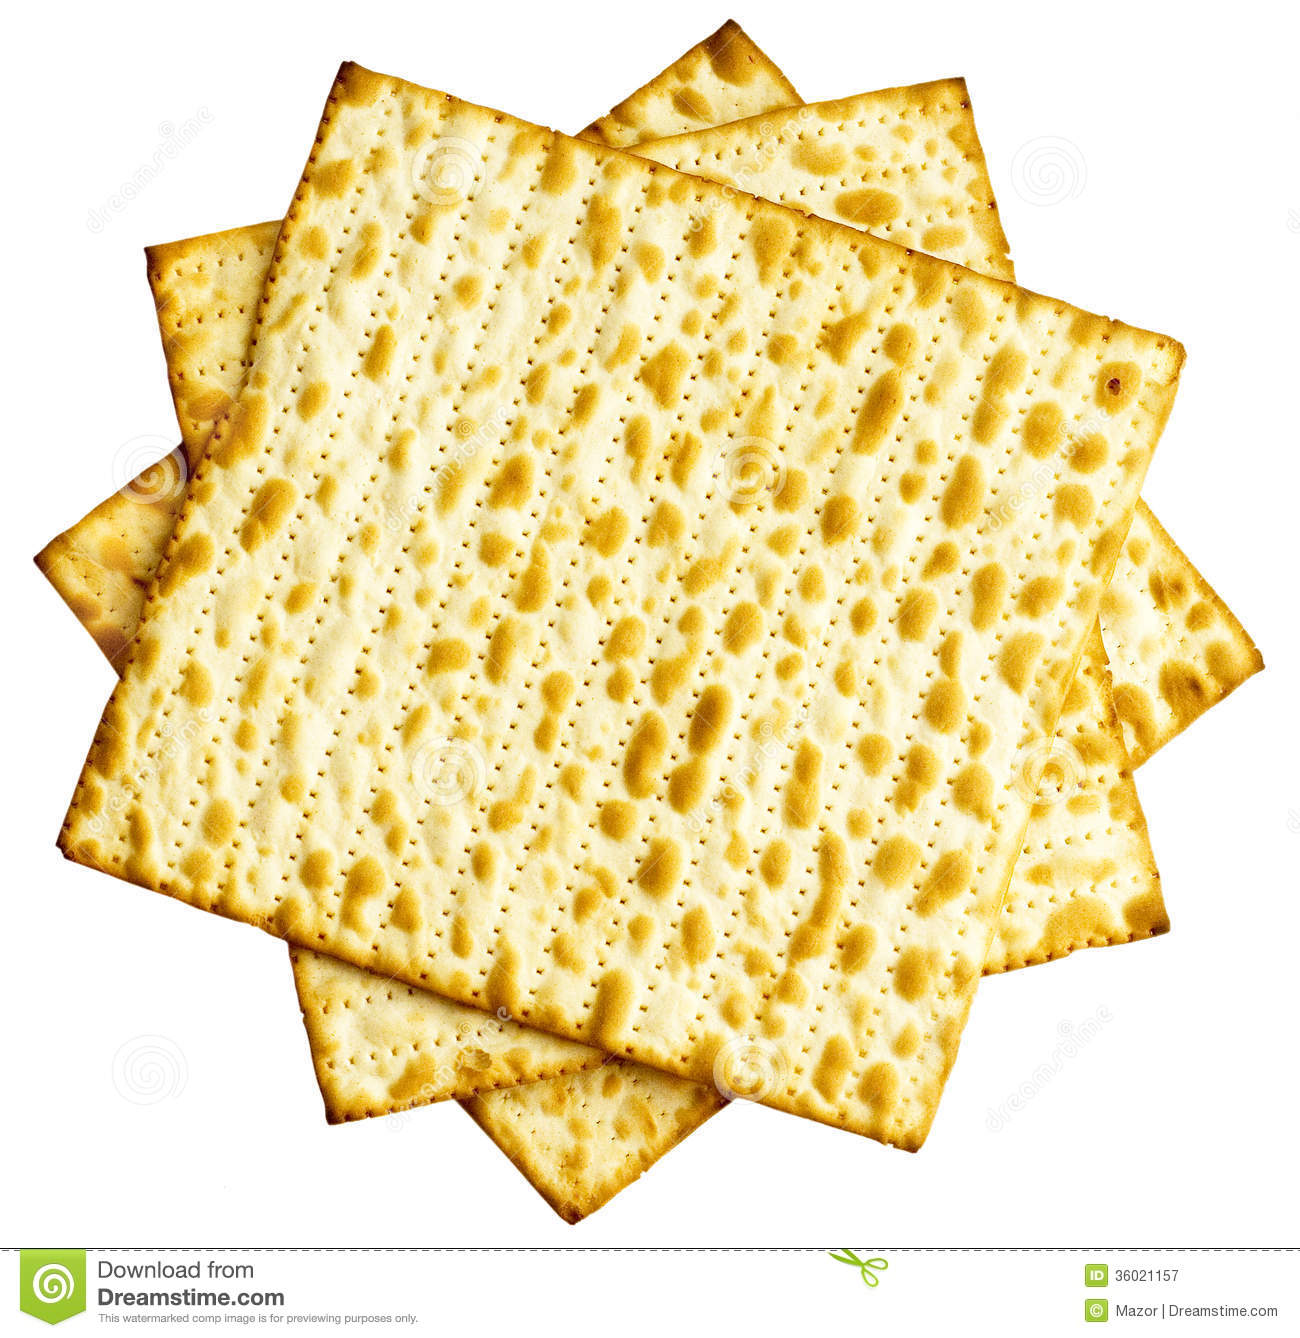 ... traditionally eaten by Jews during the week-long Passover holiday